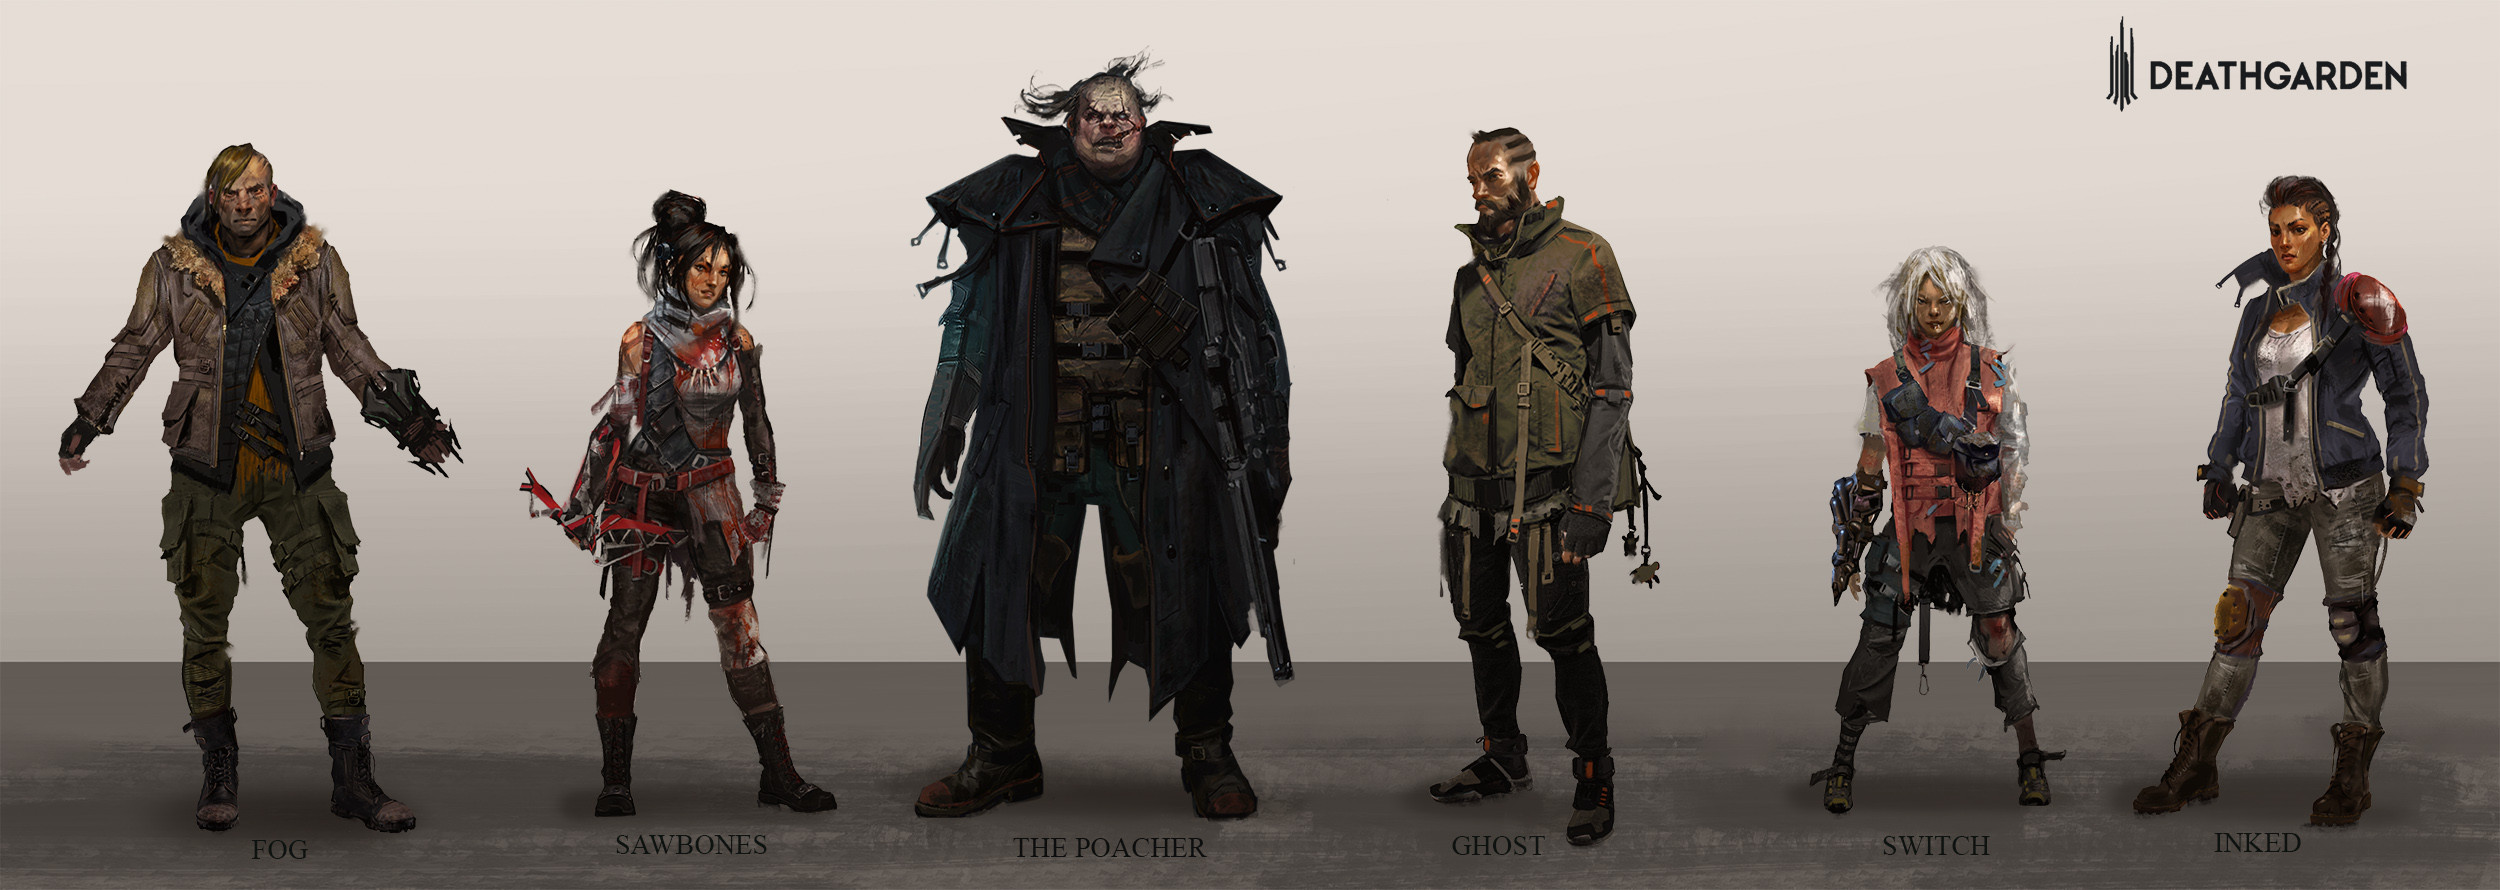 DeathGarden character concepts